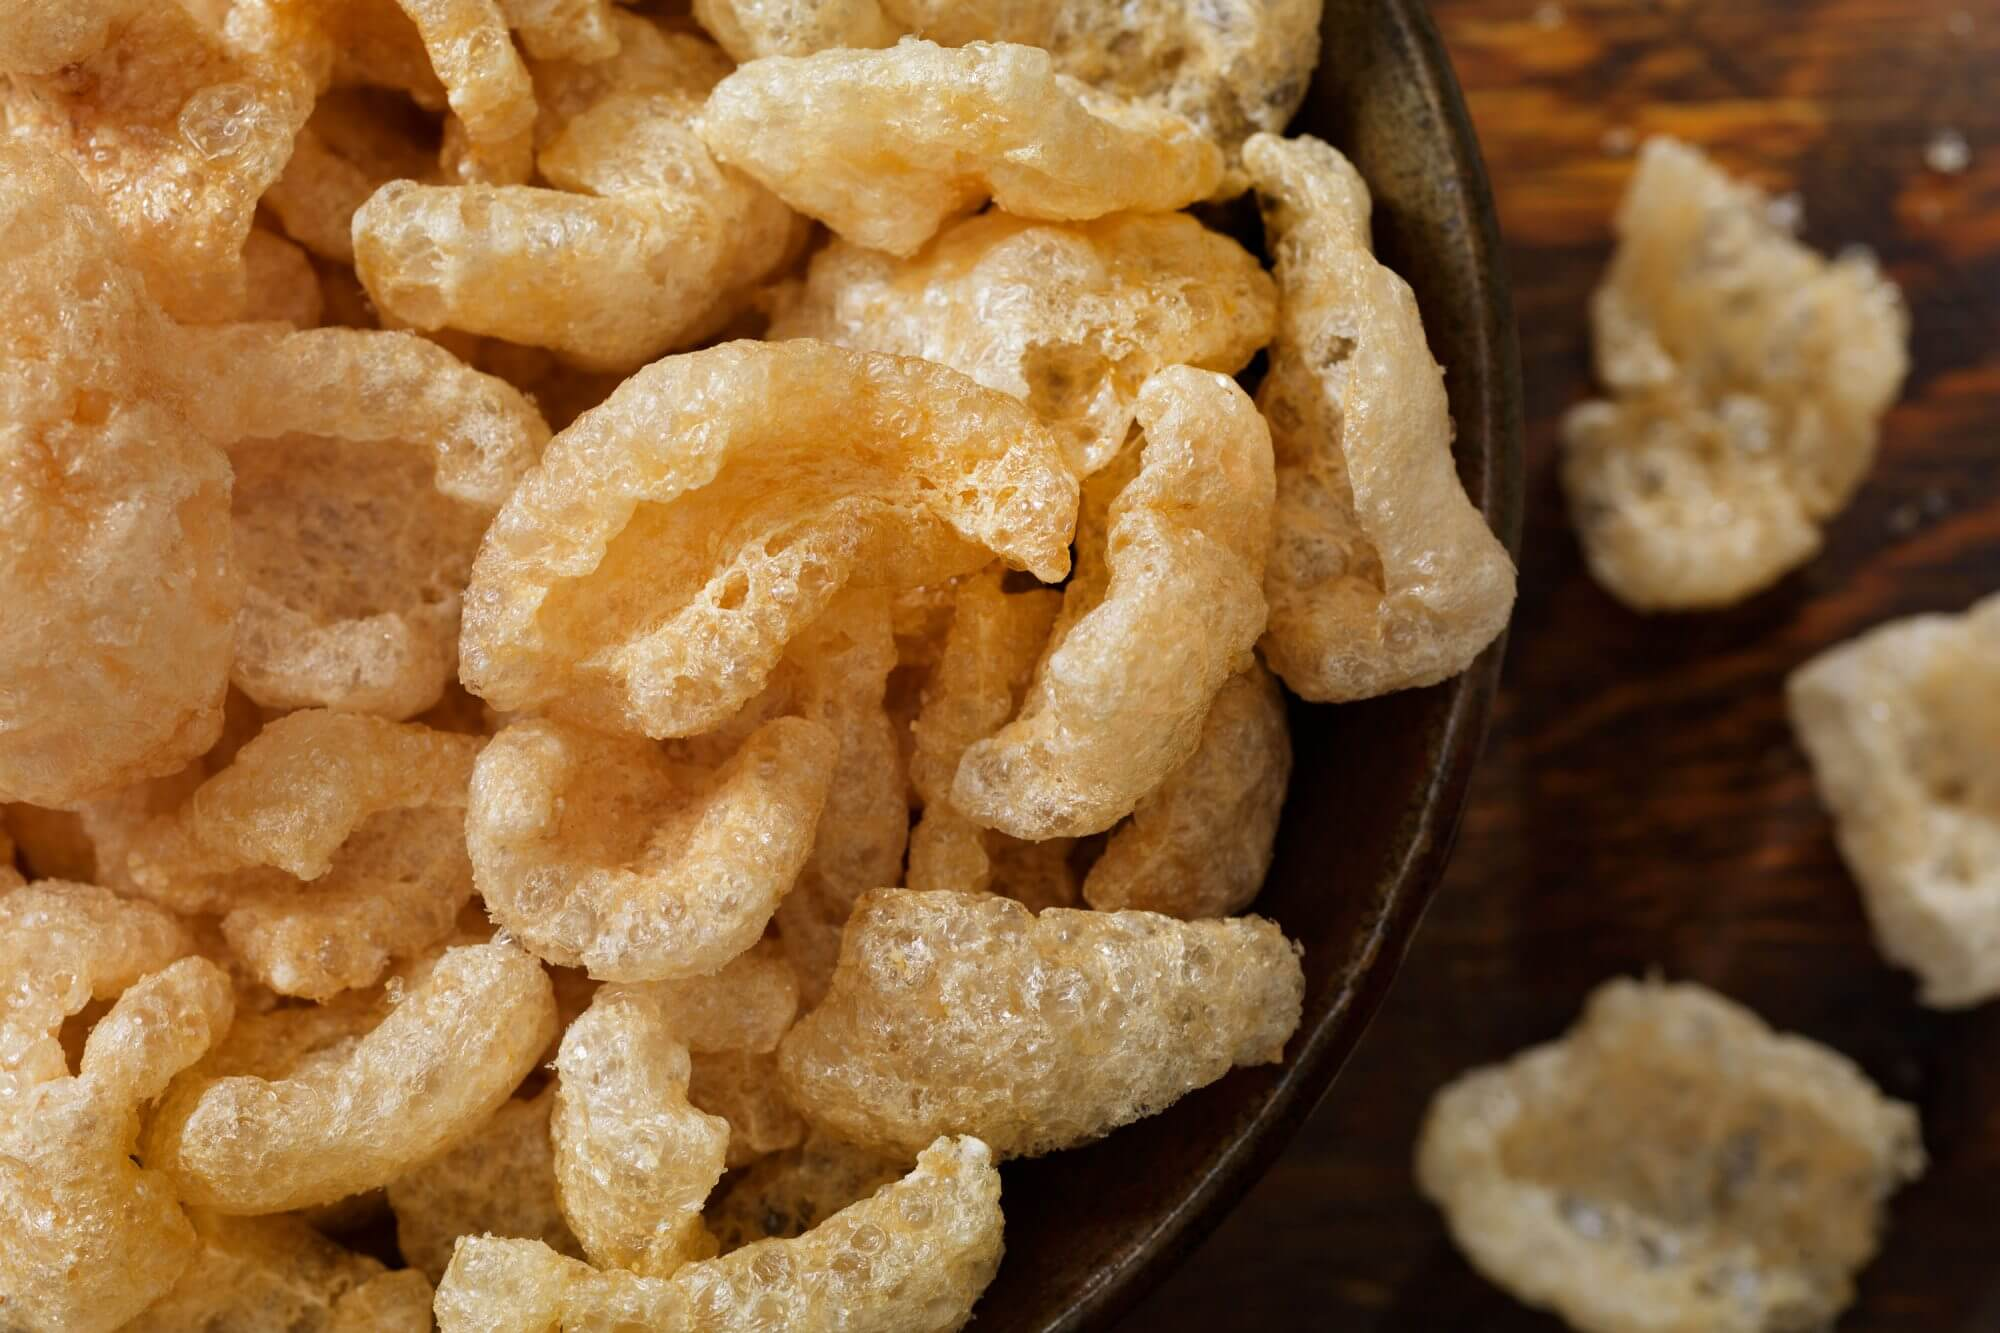 Can Dogs Eat Pork Rinds?